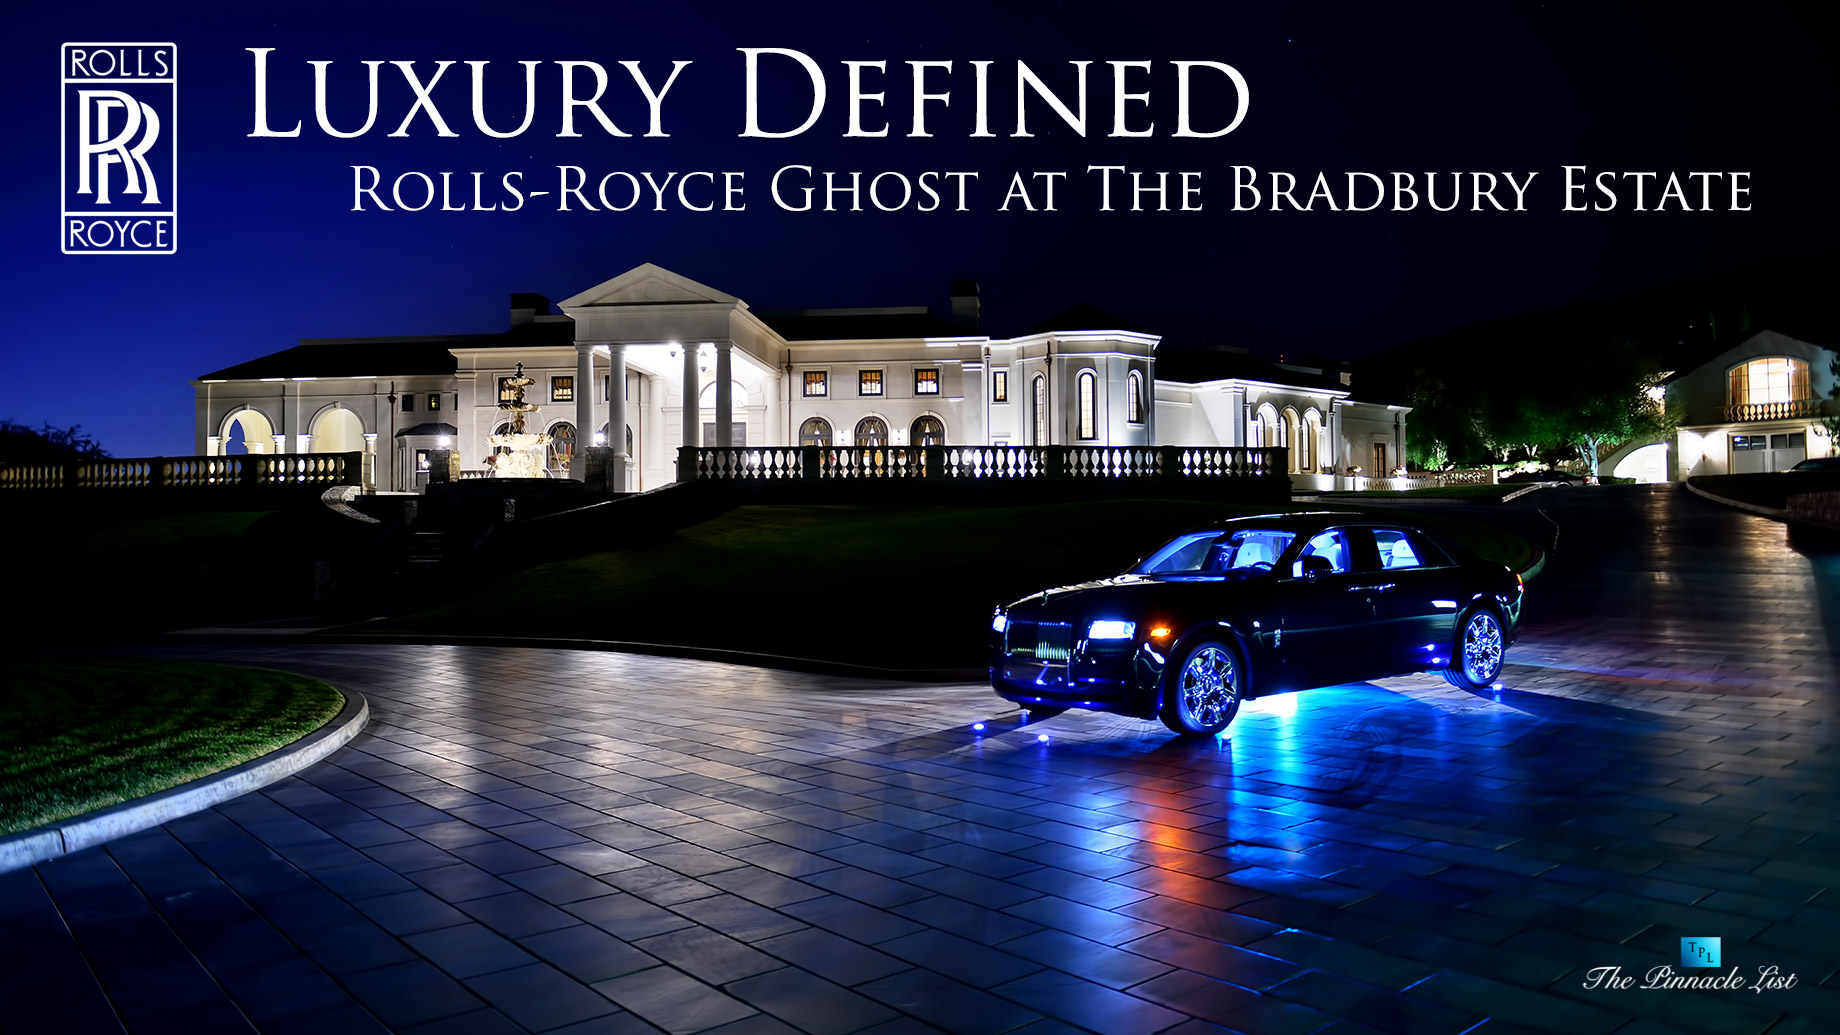 Luxury Defined - Rolls-Royce Ghost at The Bradbury Estate in Southern California